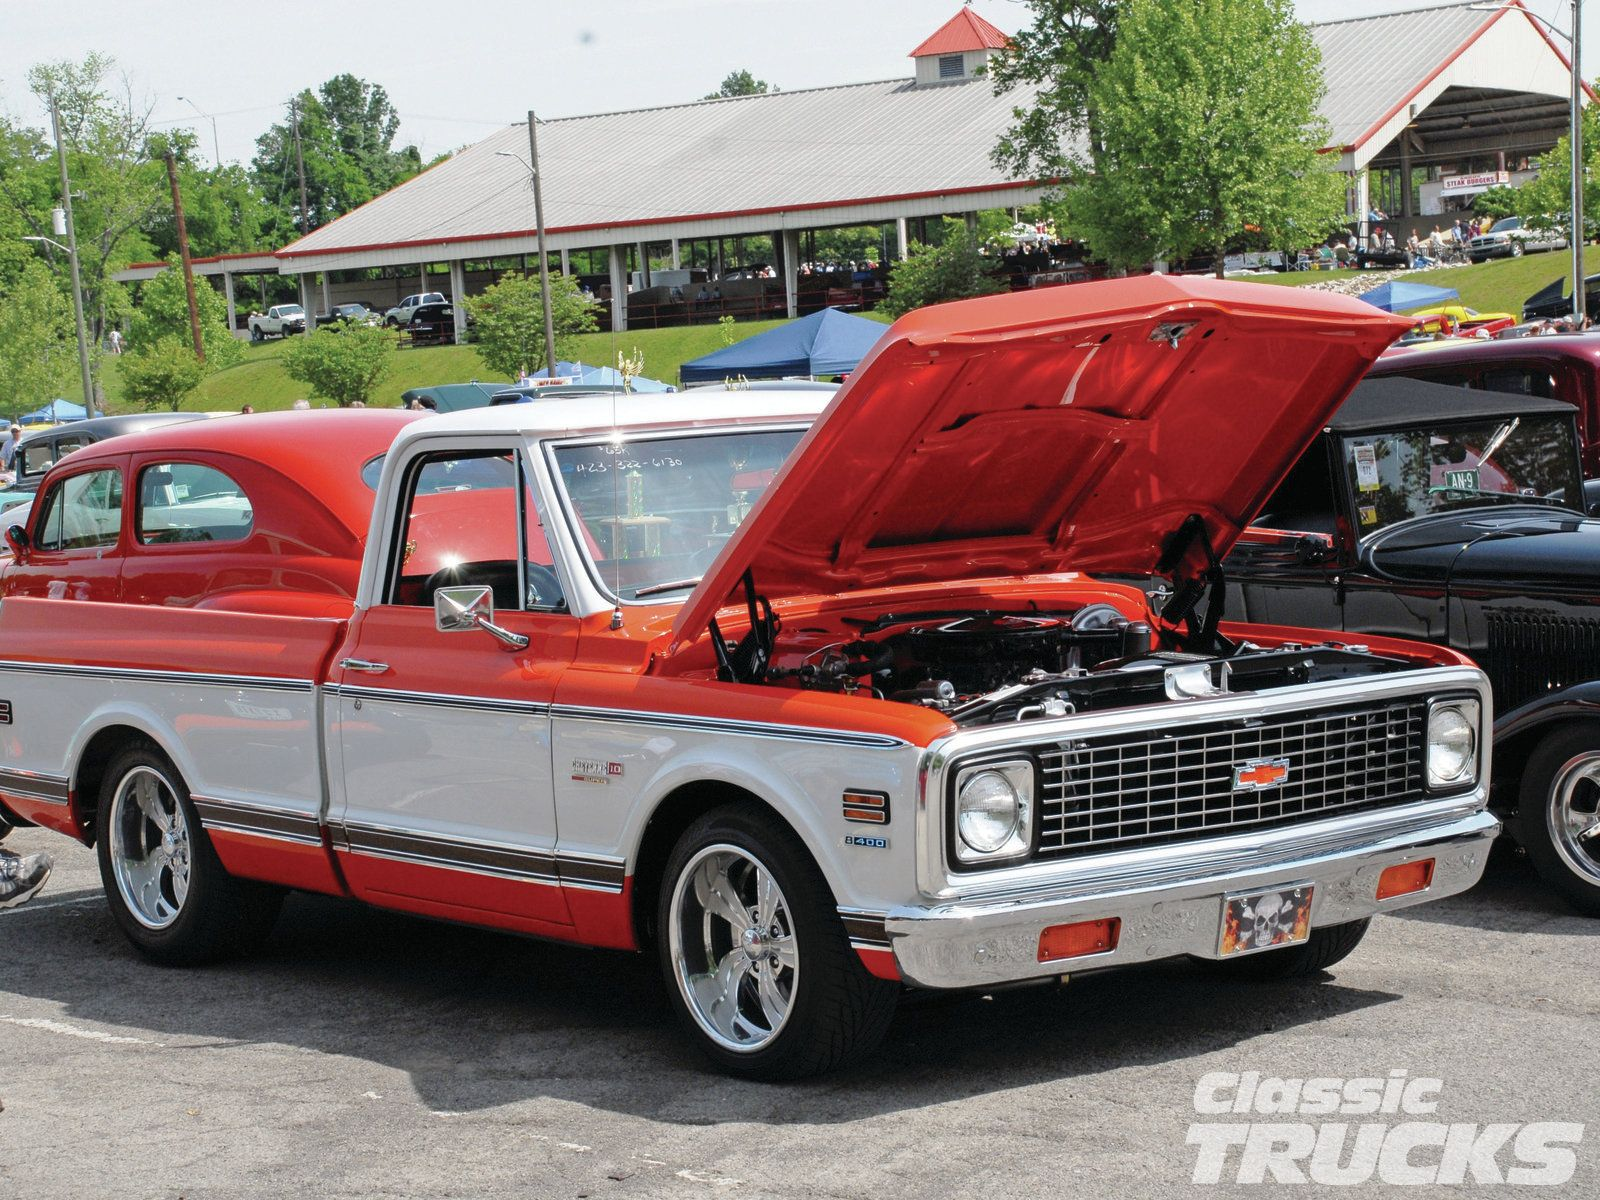 1971 chevy c10 in orange and white or it might be red and white